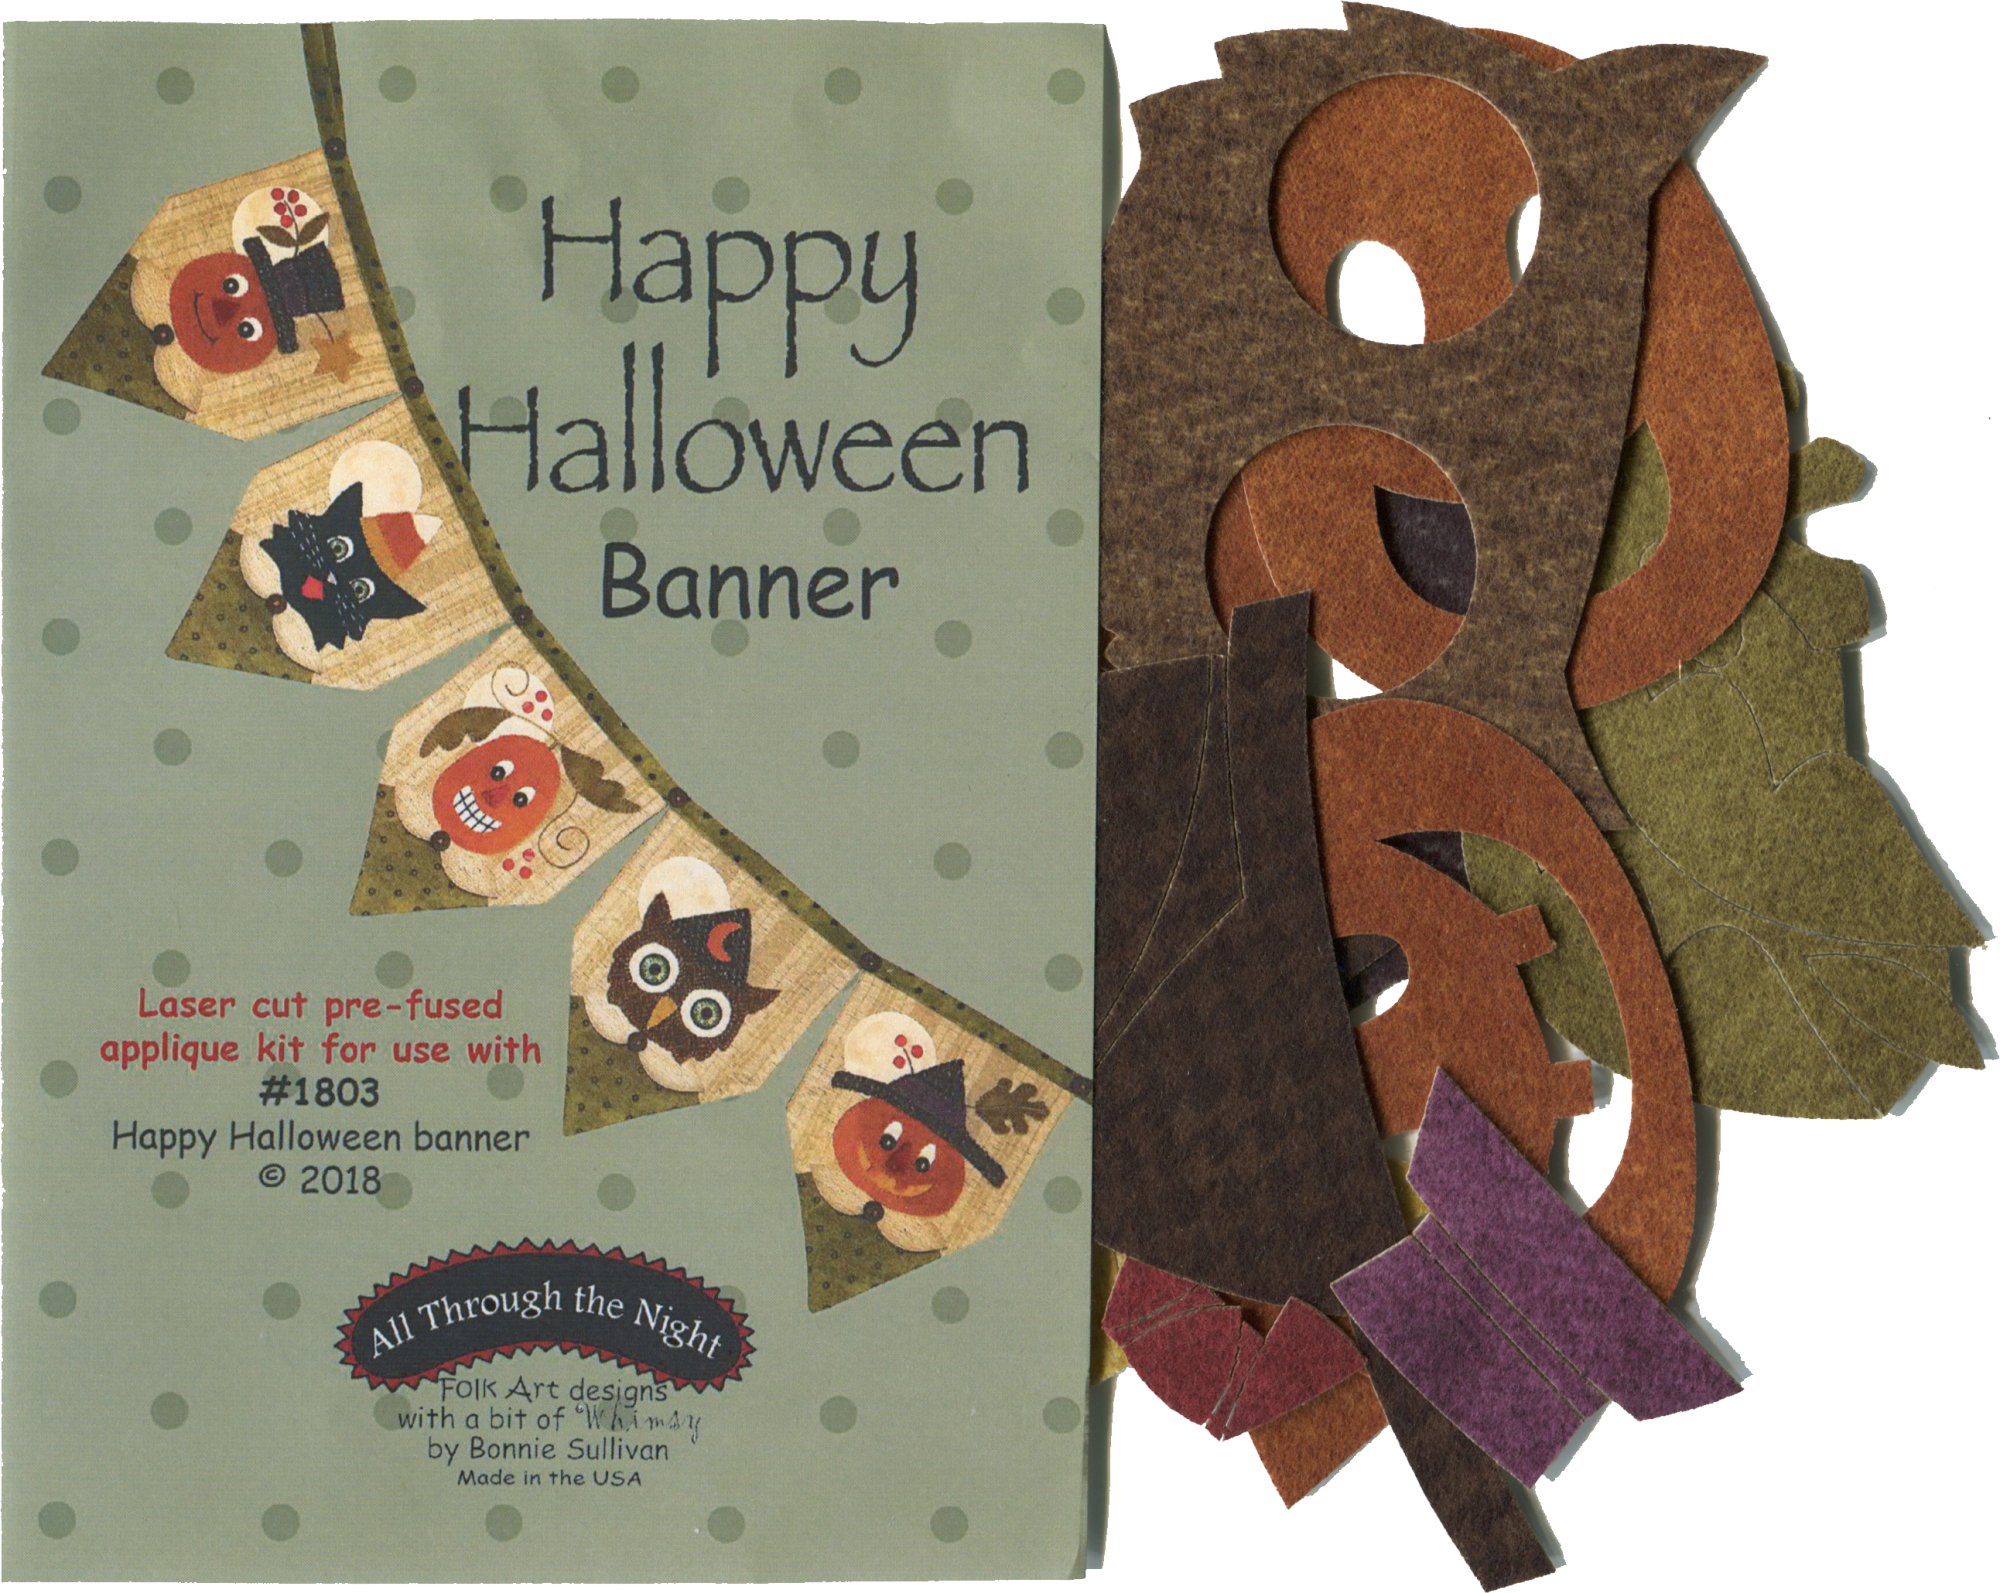 K1803 Happy Halloween Banner Applique Kit